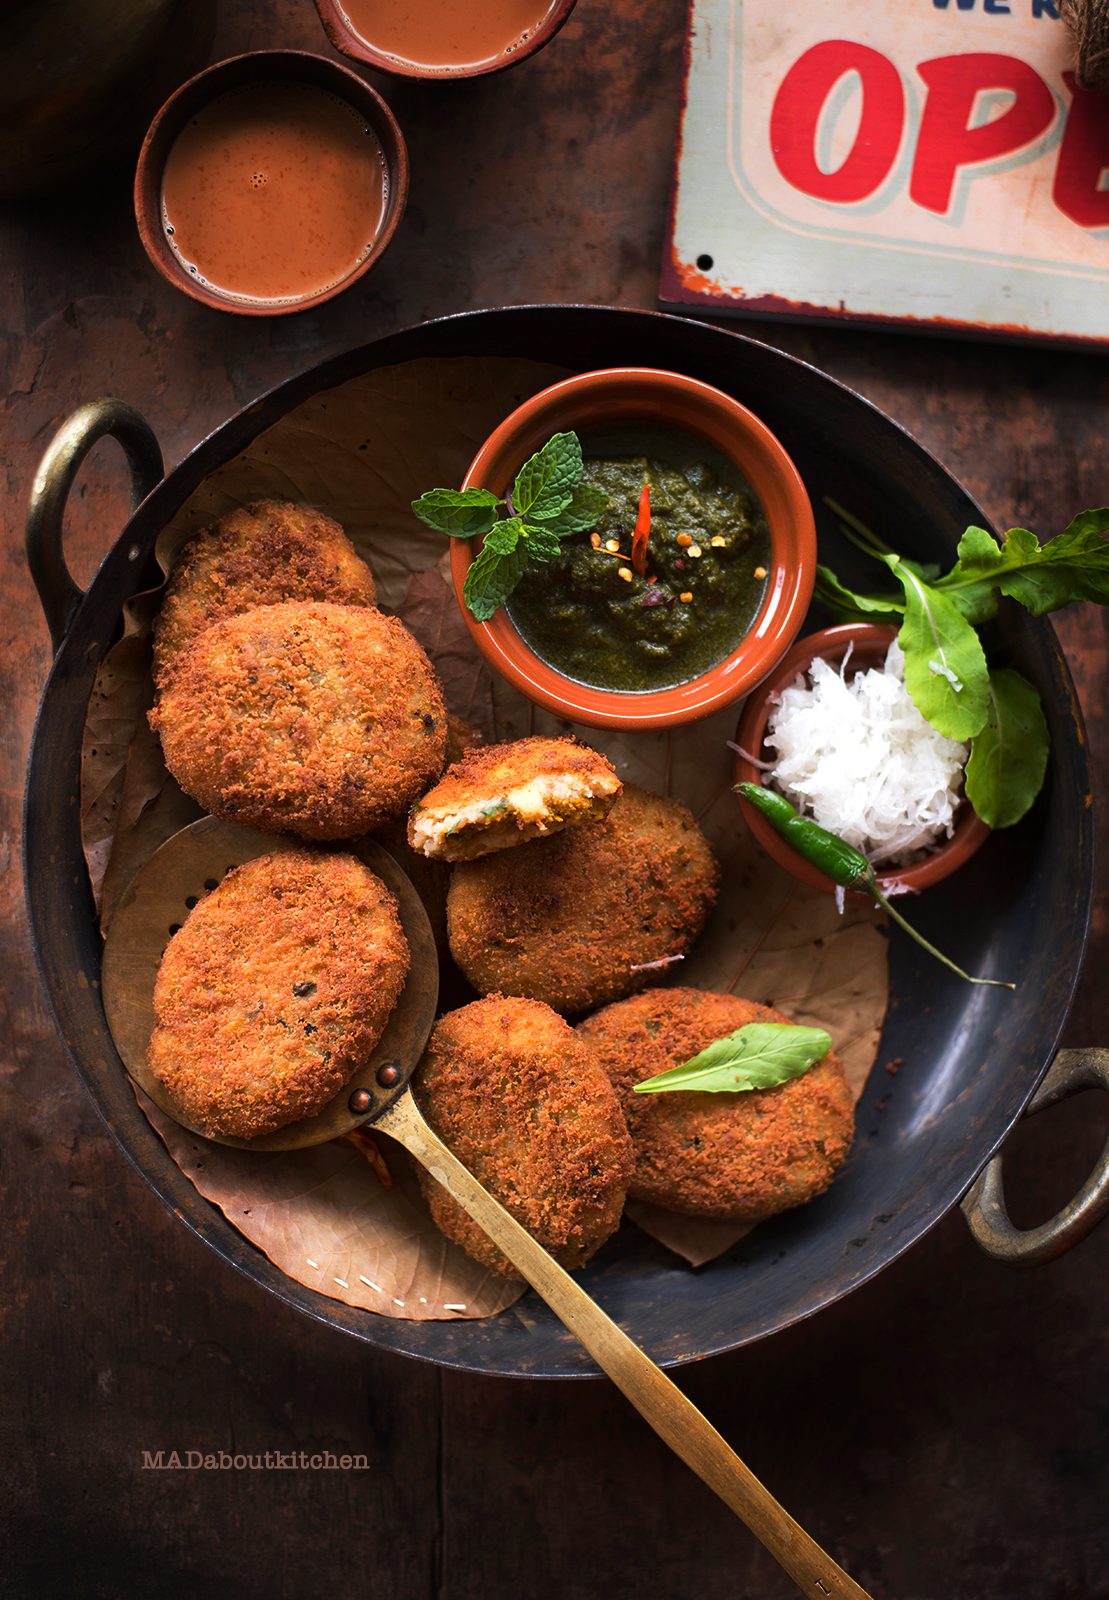 Chana Dal Tikki are cutlets stuffed with spicy lentil mixture which are perfect for this weather. These spicy patties are perfect teatime snack.